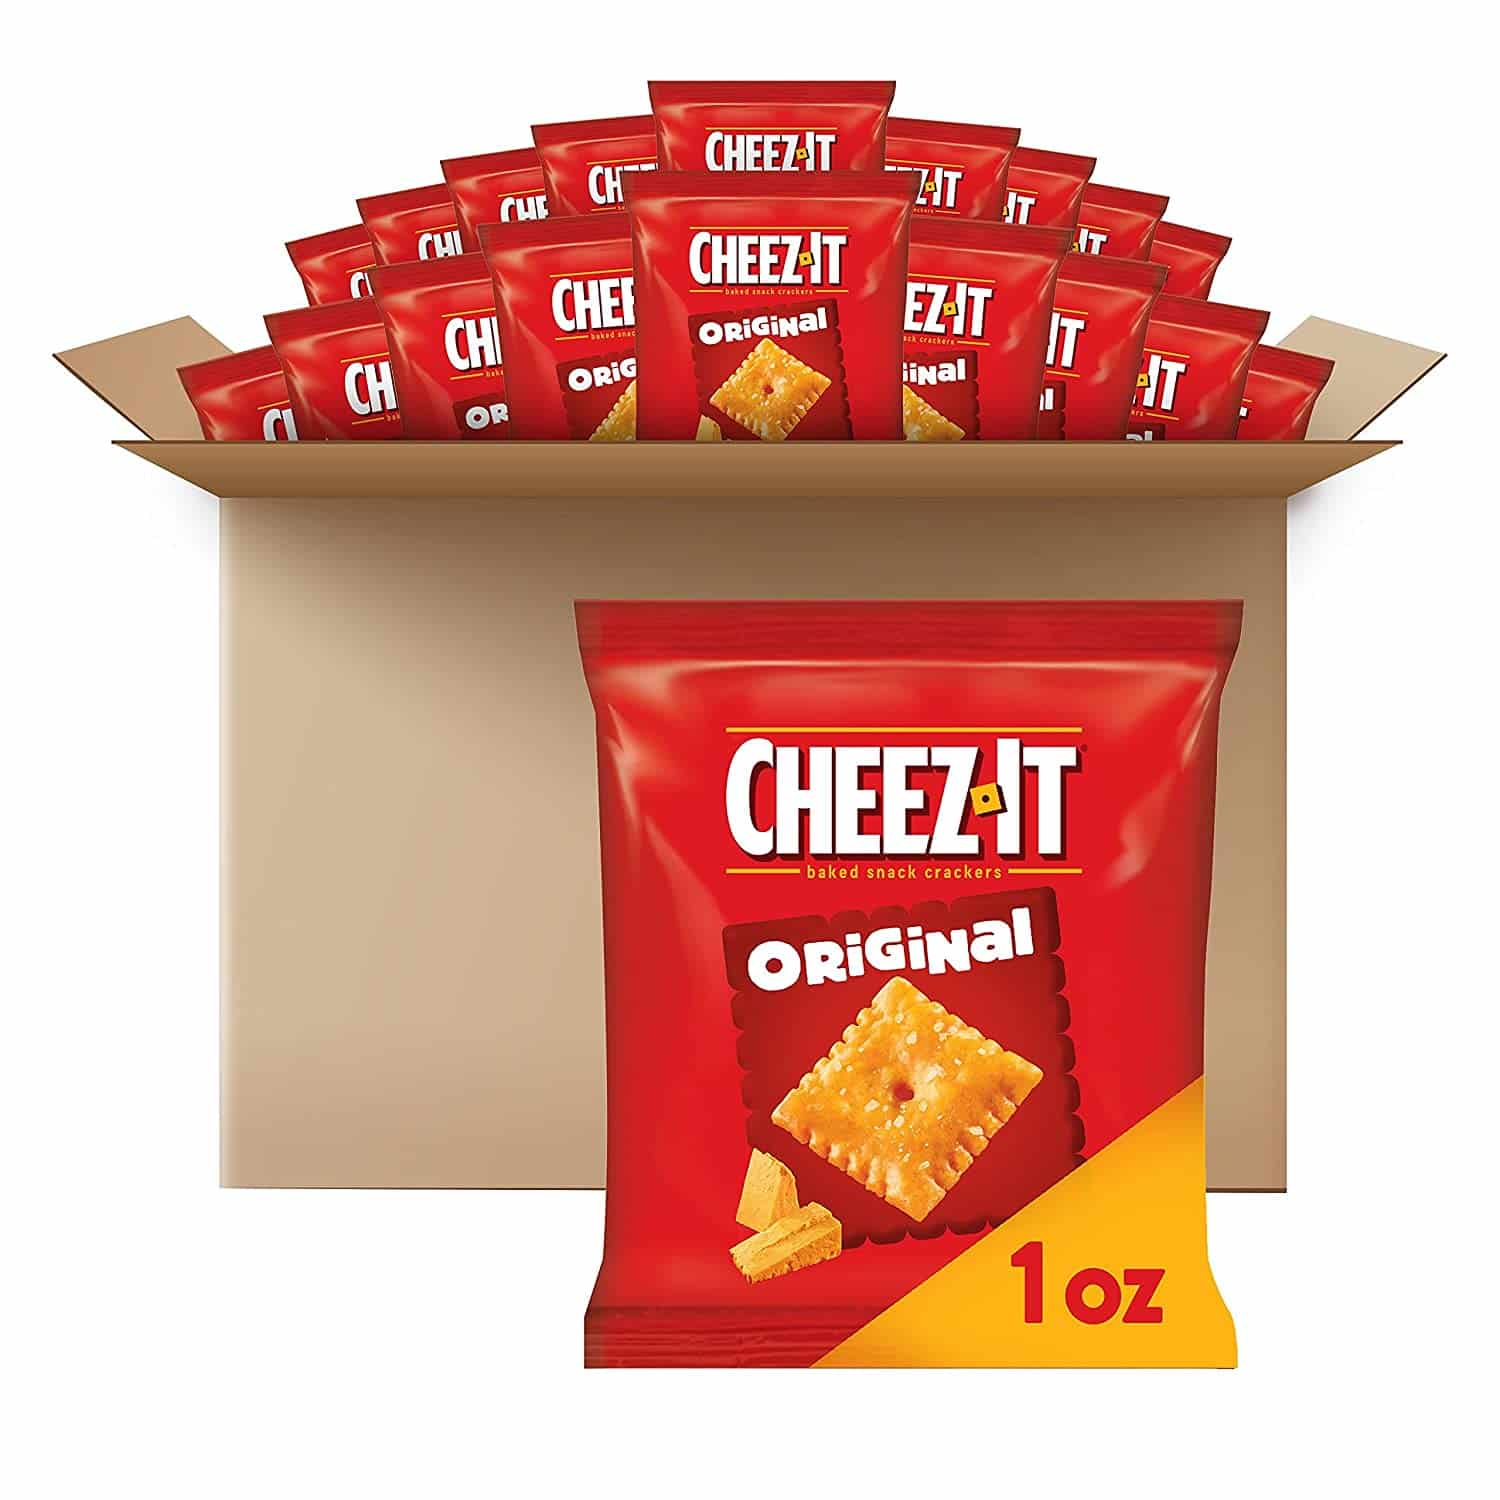 Amazon: 40-Pack Cheez-It Baked Snack Cheese Crackers, Original for $9.50 (Reg. $13.76)